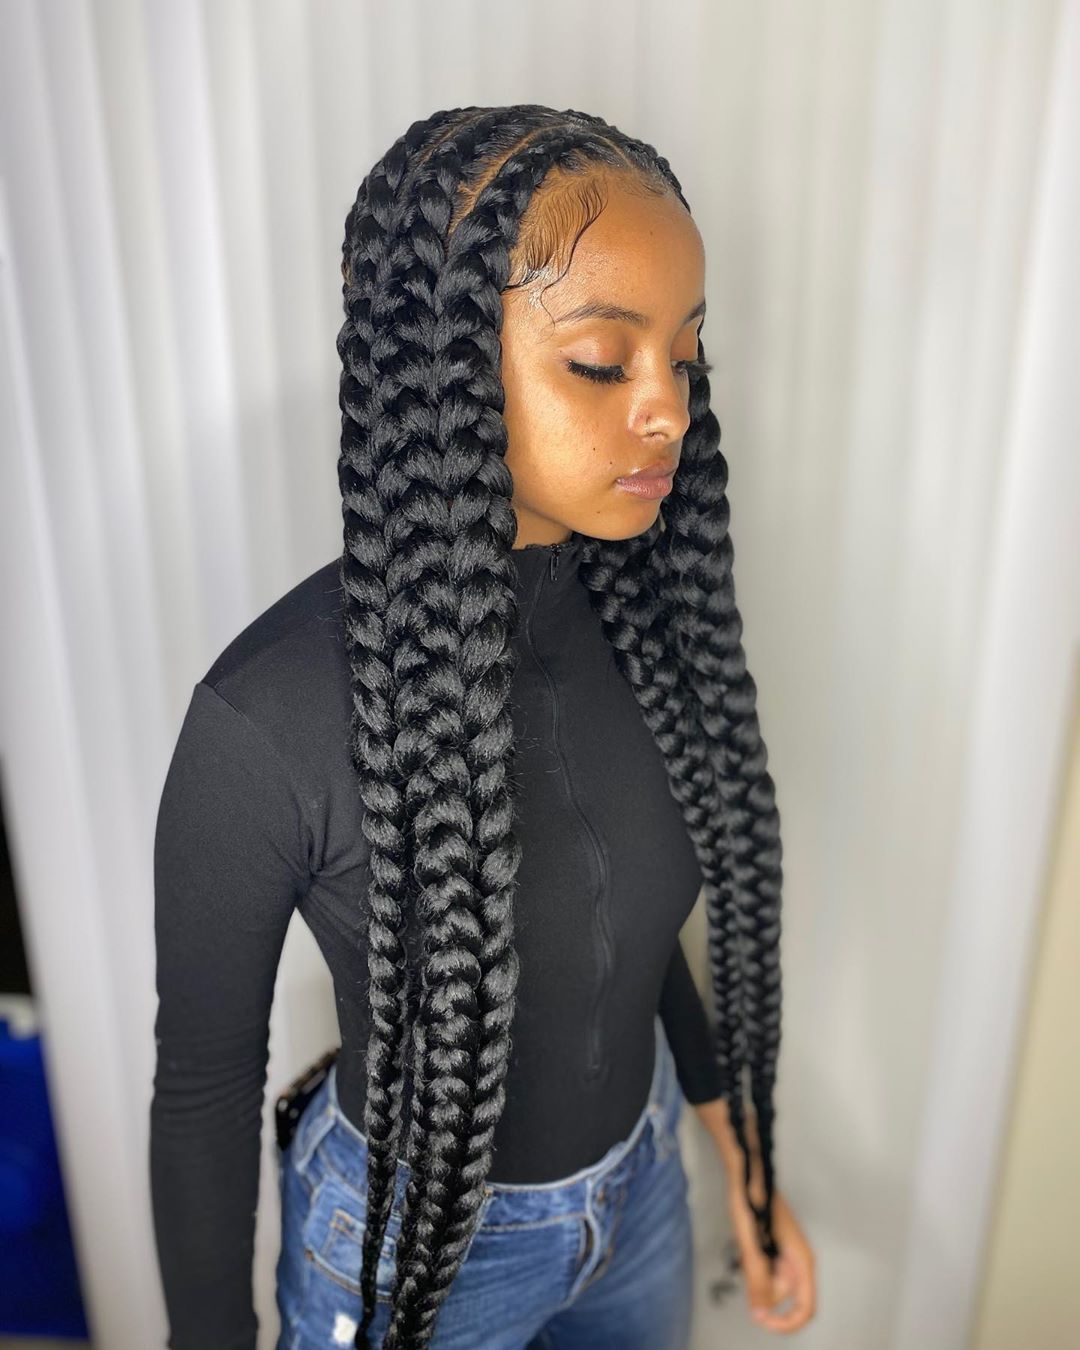 Best Braiding Hairstyles African American Hair 715 Store Dreadlocks Hairstyles 2019 Island Twist Hair New Hairstyle Cutting